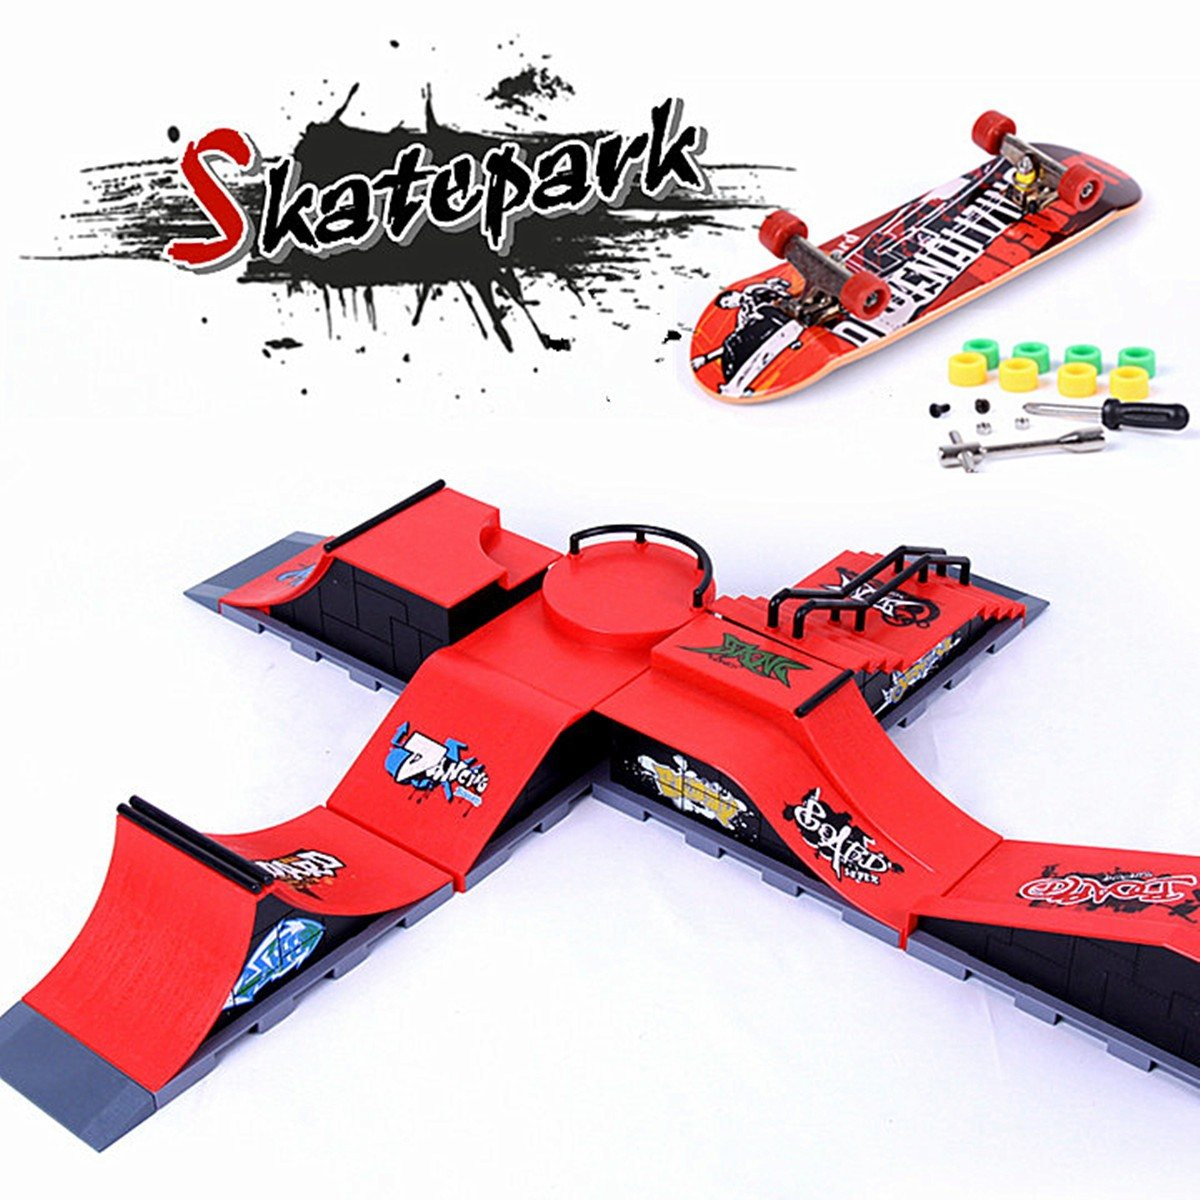 6 Types Skate Park Ramp Parts for Tech Deck Fingerboard Ultimate Parks Birthday Toy Gifts For Children цена